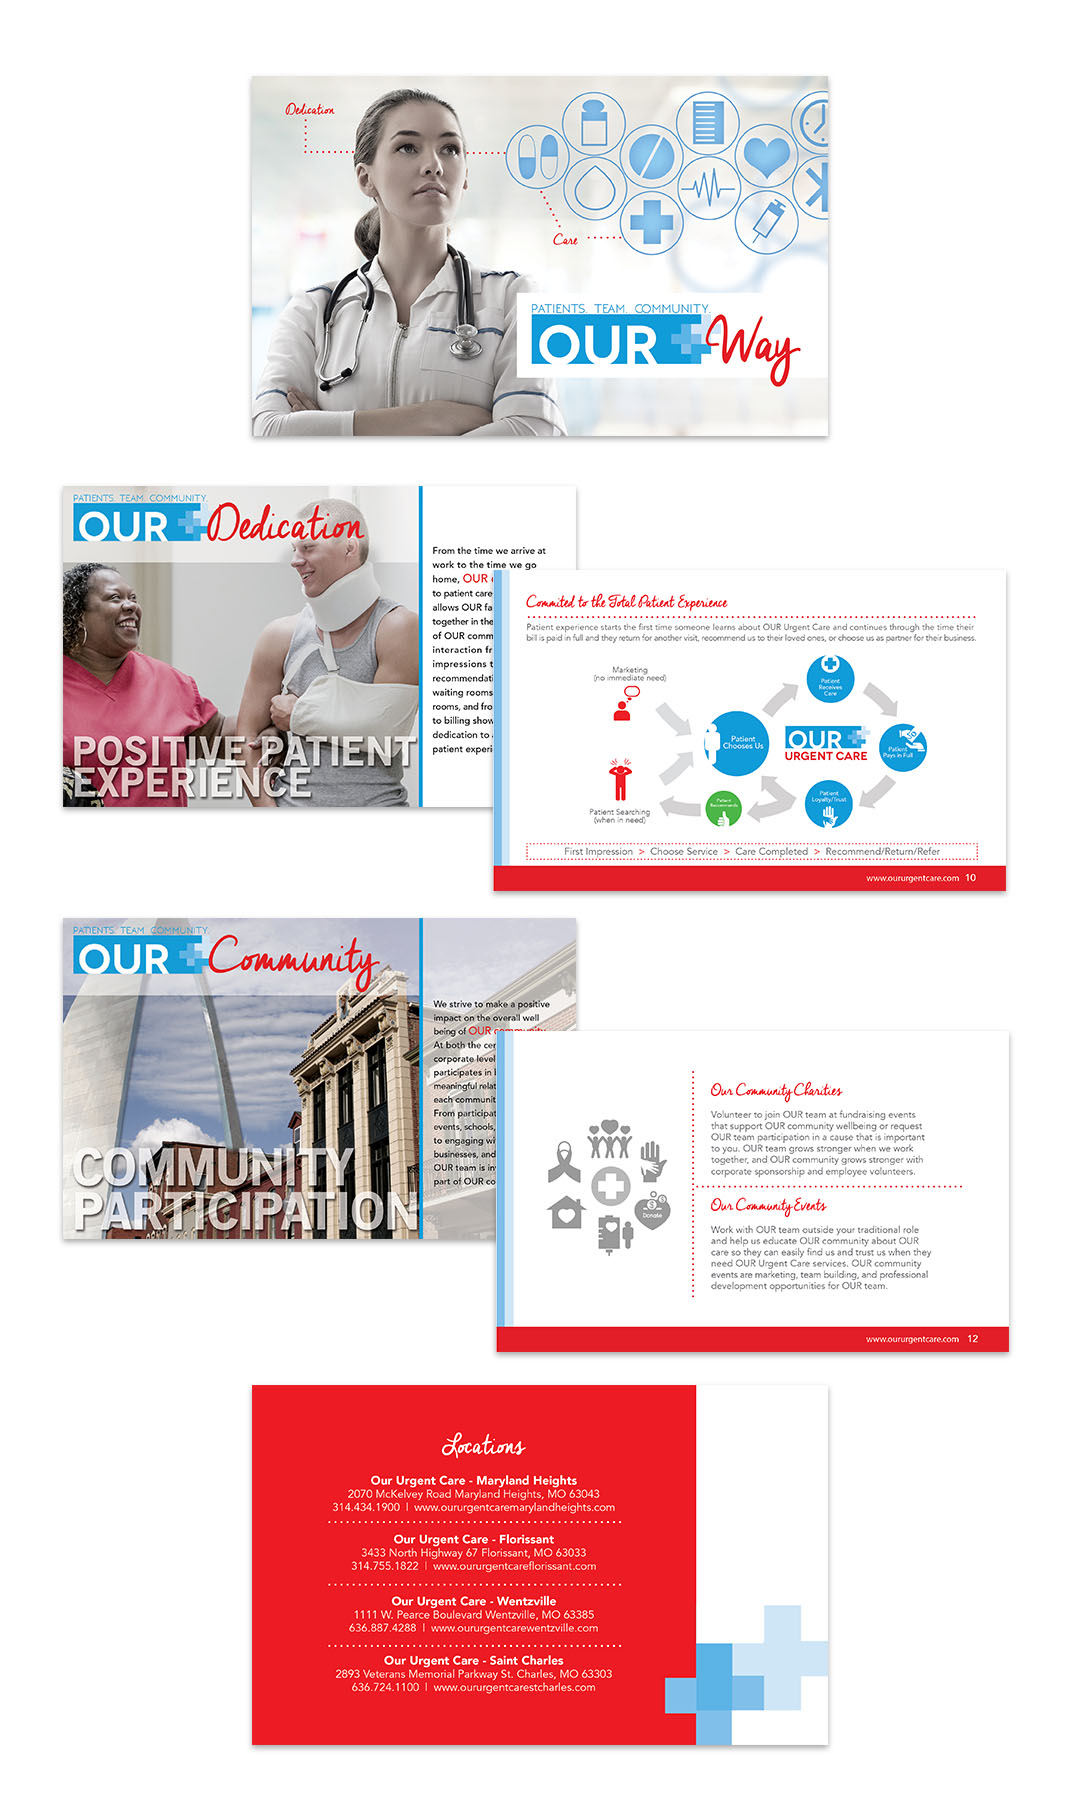 Design brochures and internal communications too